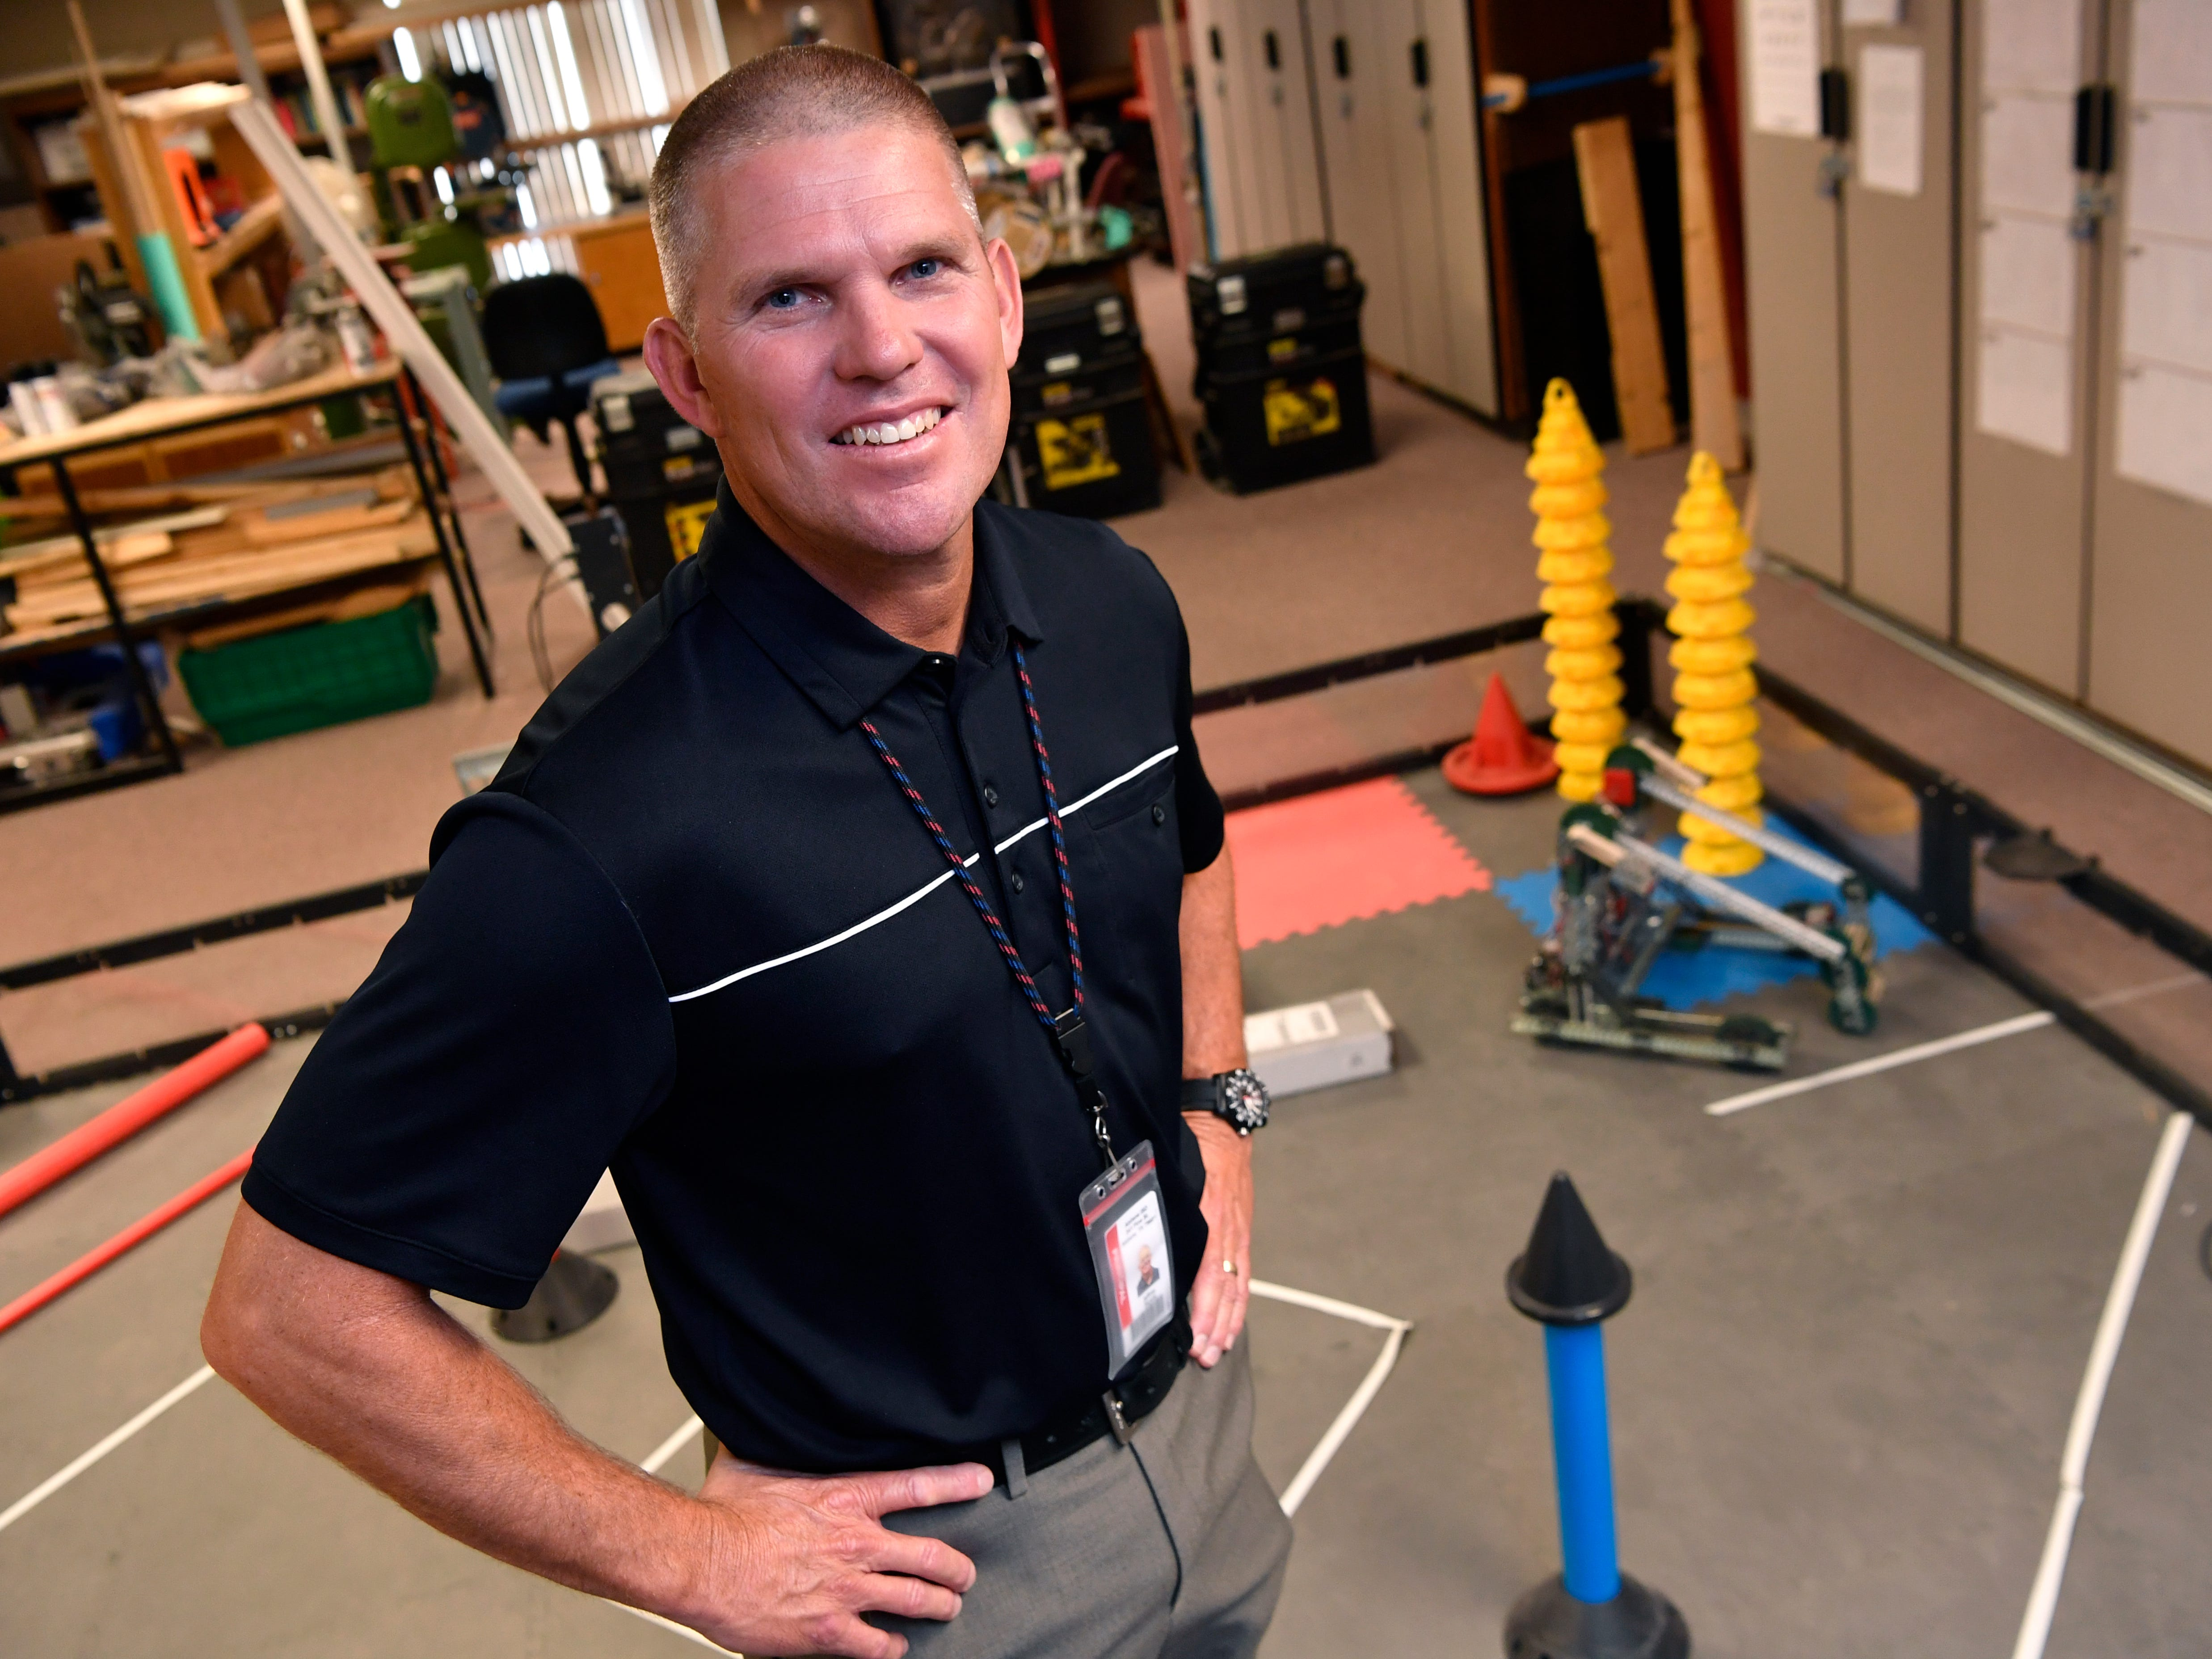 Jeff Howle, the new principal for ATEMS, in the school's robotics lab Wednesday August 8, 2018.